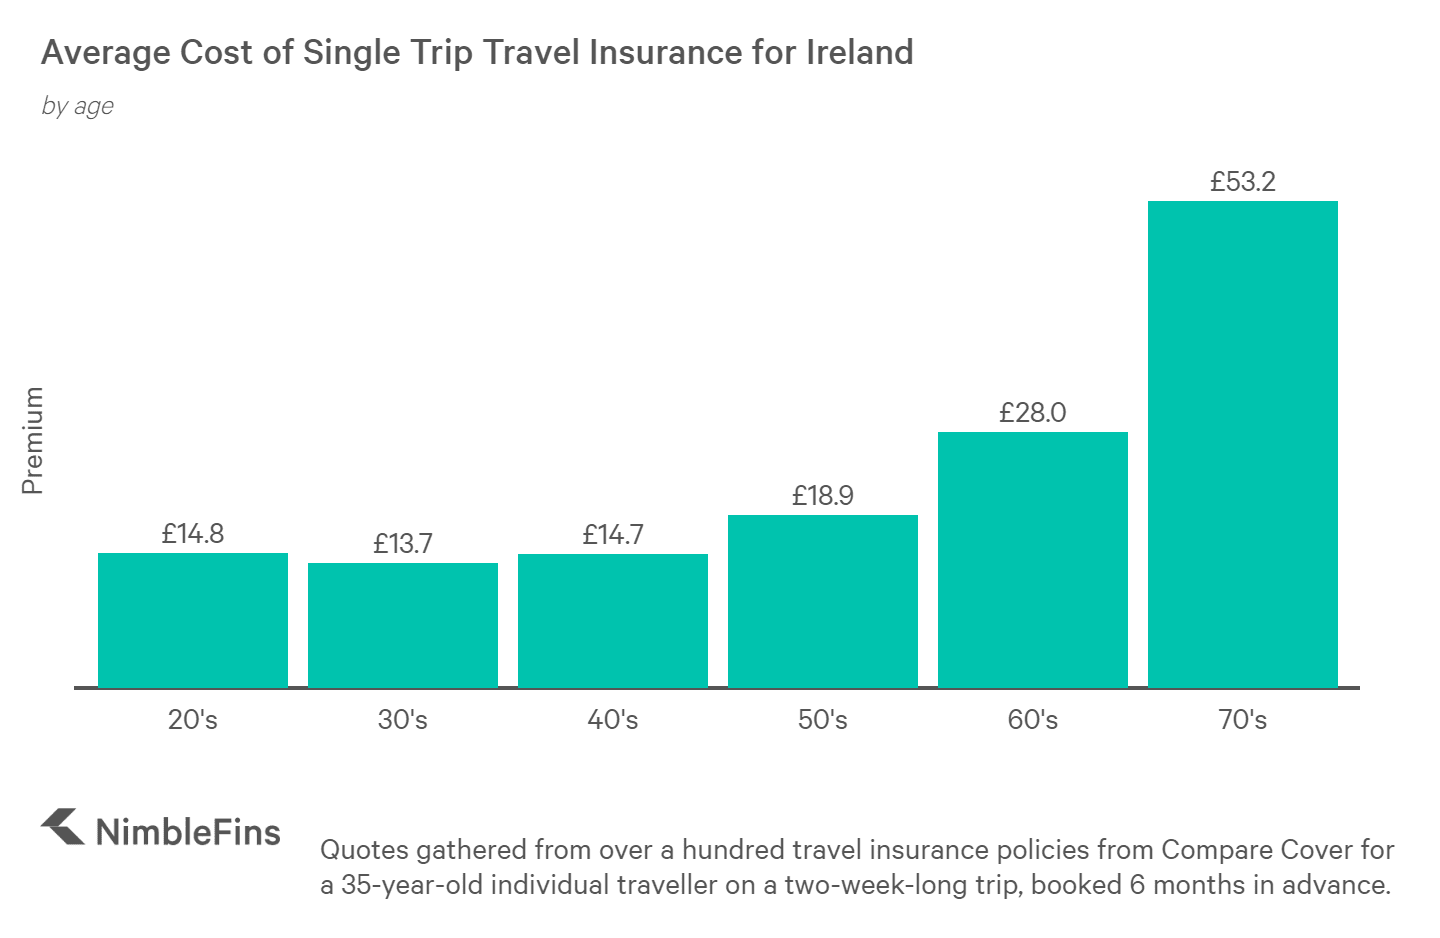 chart showing cost of travel insurance to Ireland for those aged in 20s, 30s, 40s, 50s, 60s, and 70s